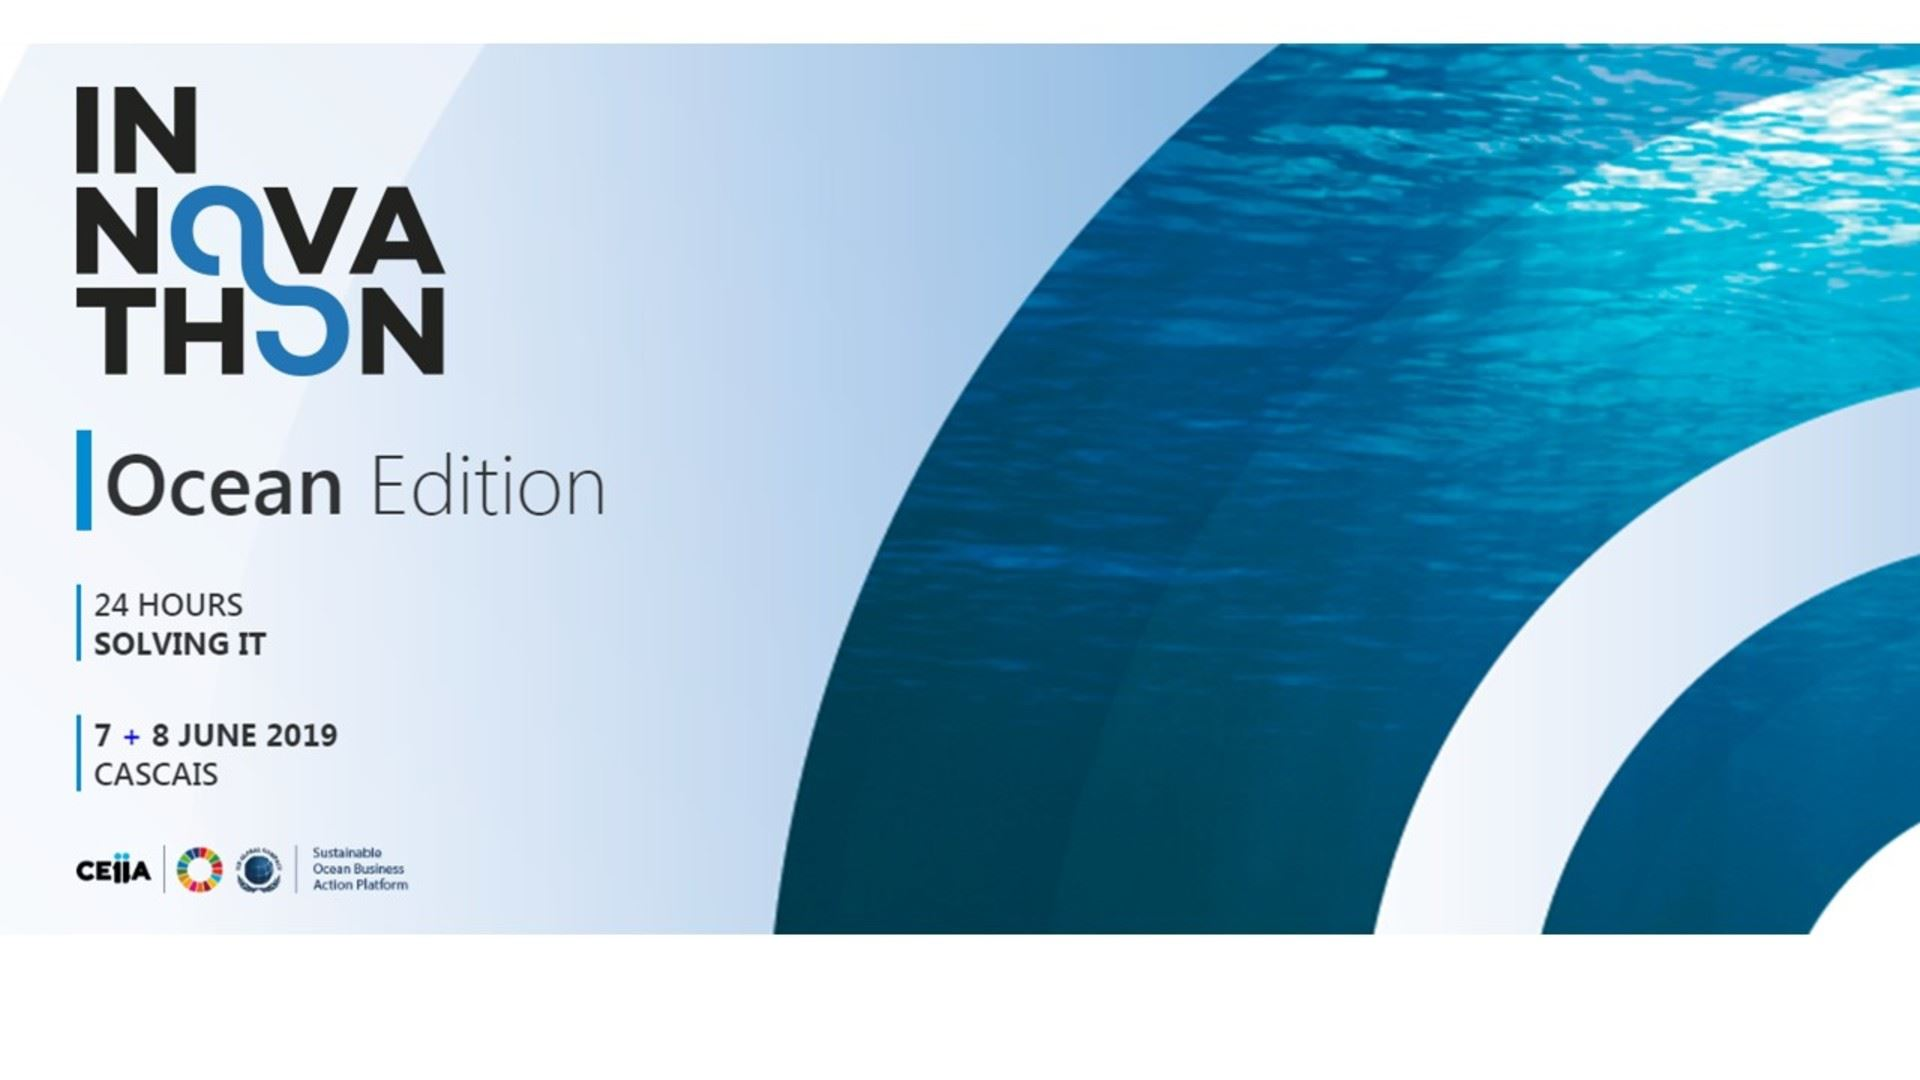 Innovathon - Ocean Edition | Call for Applications